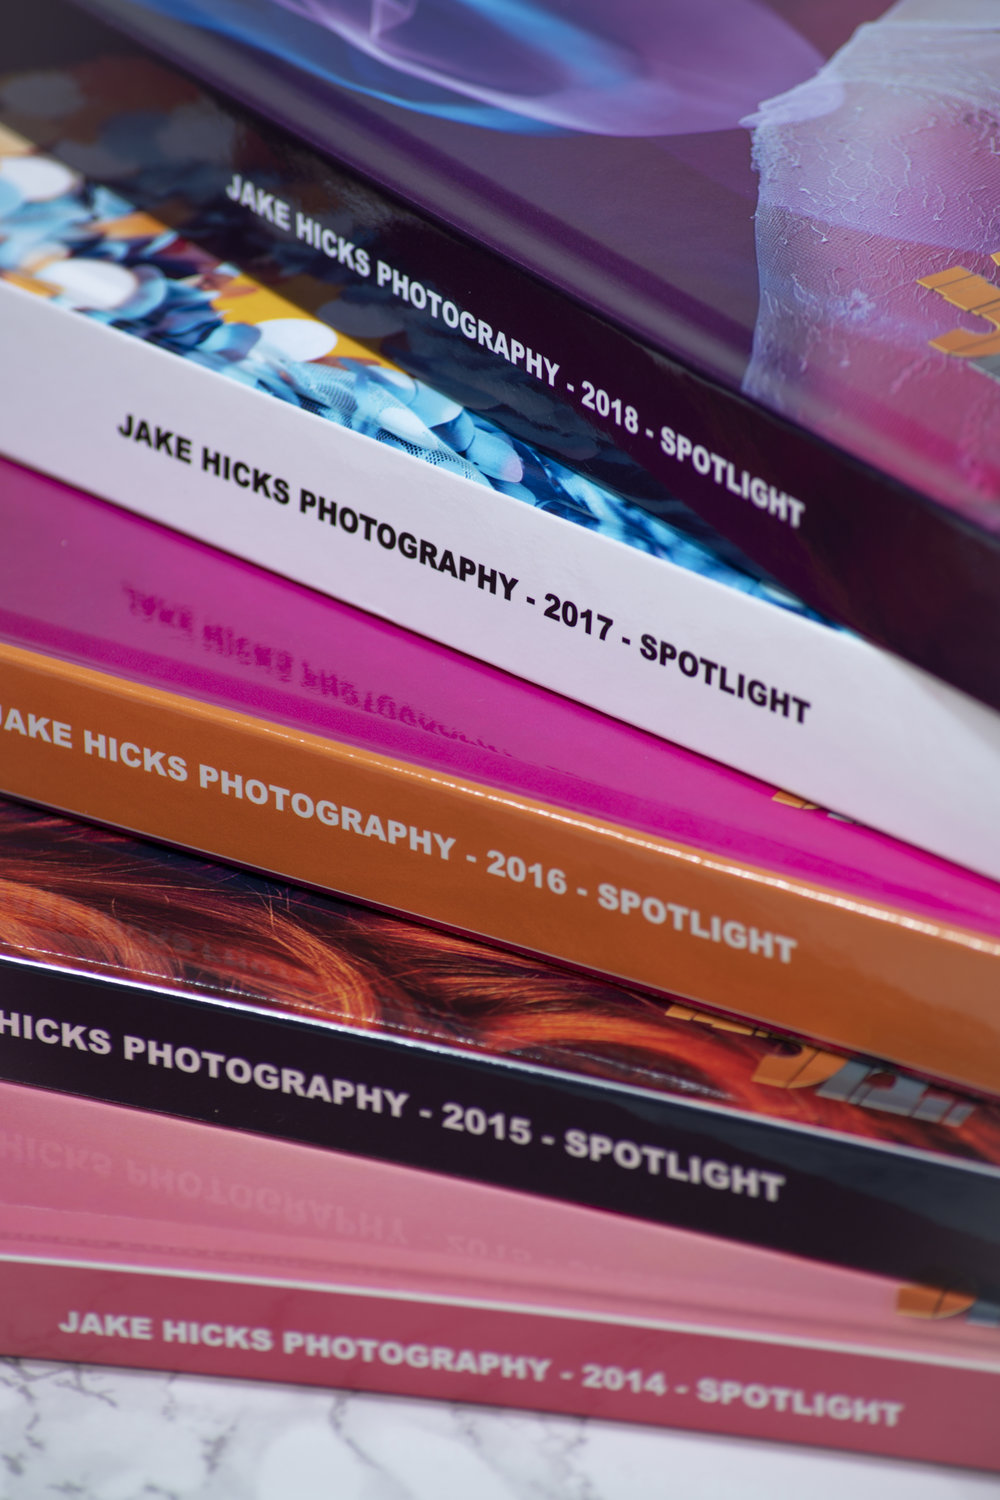 Printing an annual photo book each year can seem costly and time consuming, but in time, you'll be thankful that you did it.